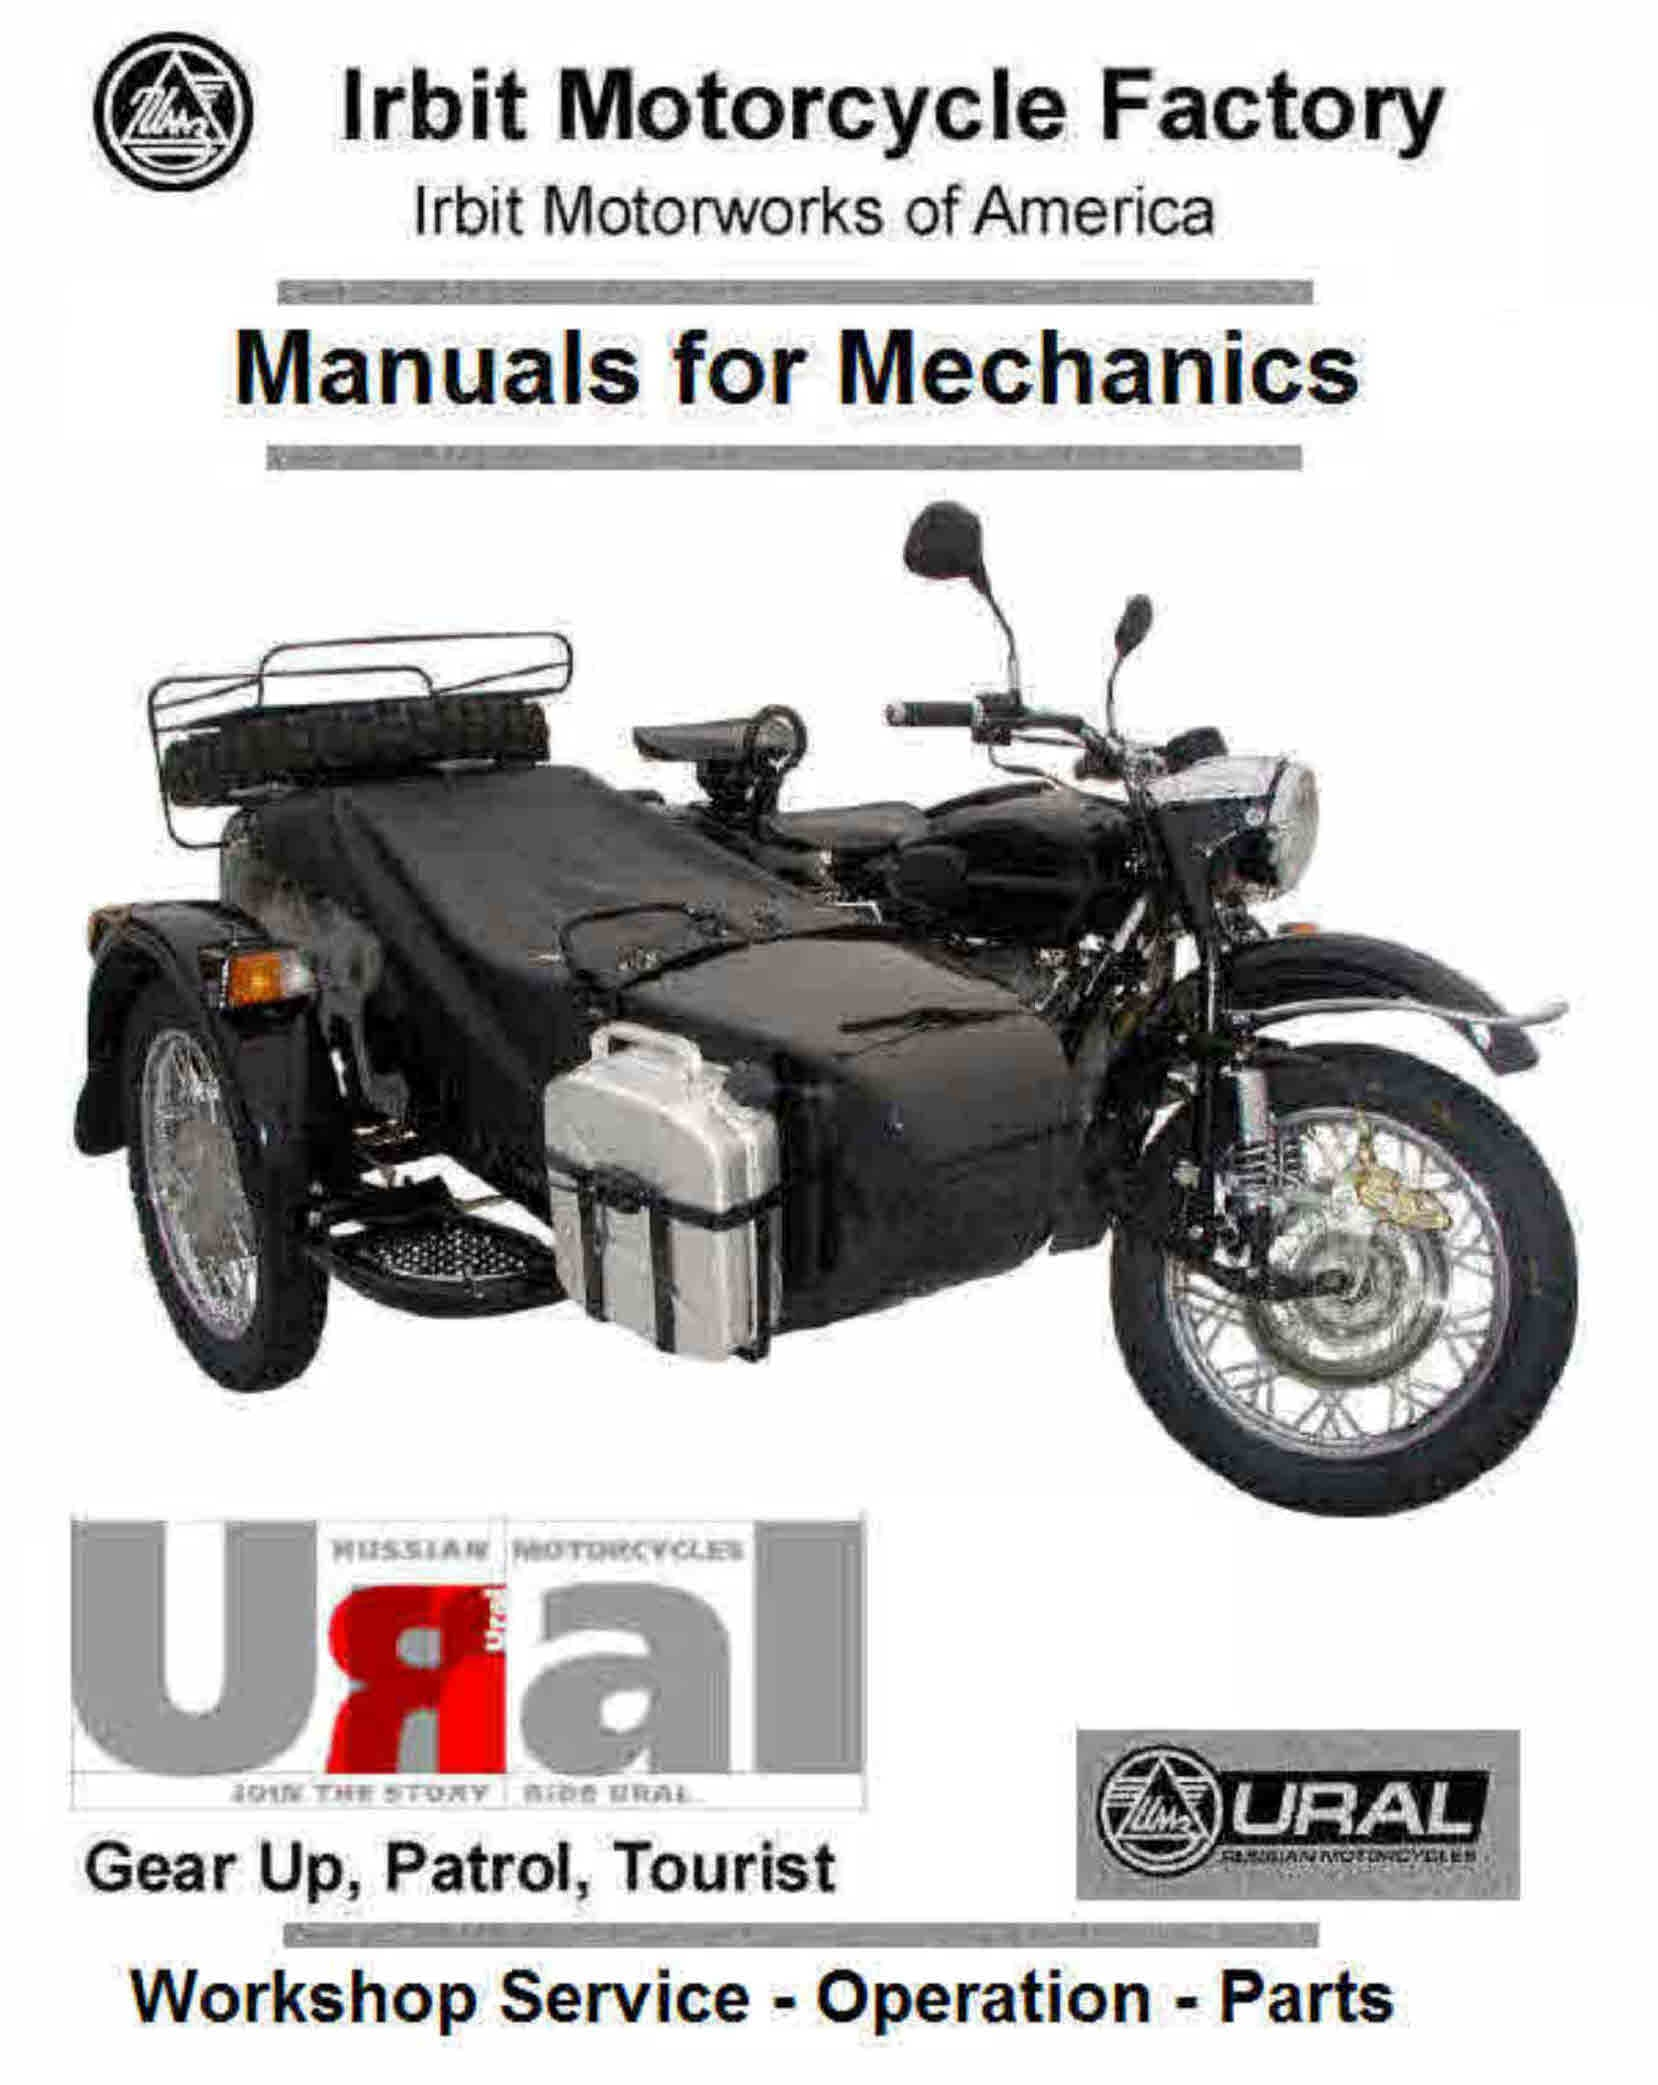 Ural Motorcycle Groups Wiring Diagrams Data Base Engine Diagram Manauls For Mechanics Themanualman Rh Sellfy Com On Xingyue